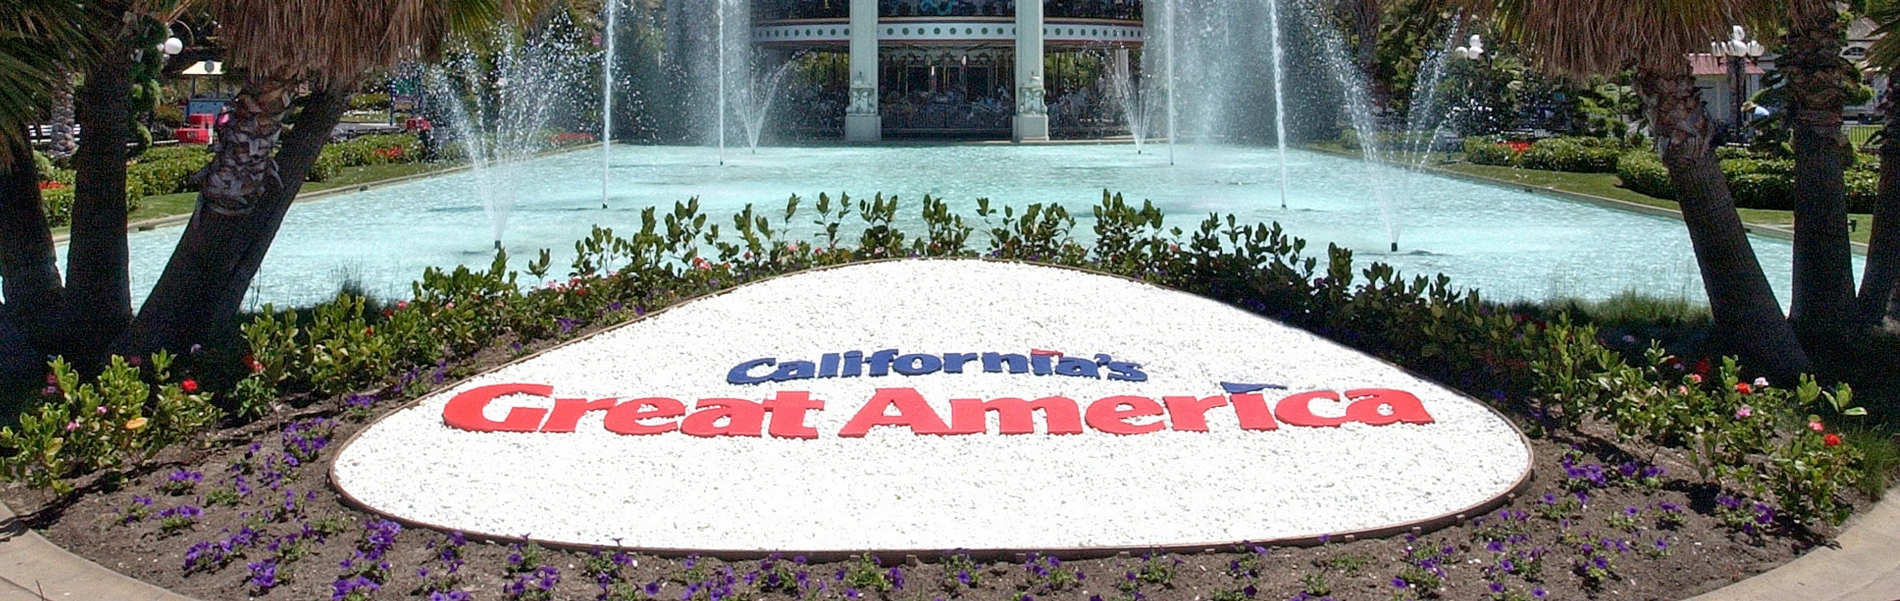 California's Great America sign in Santa Clara